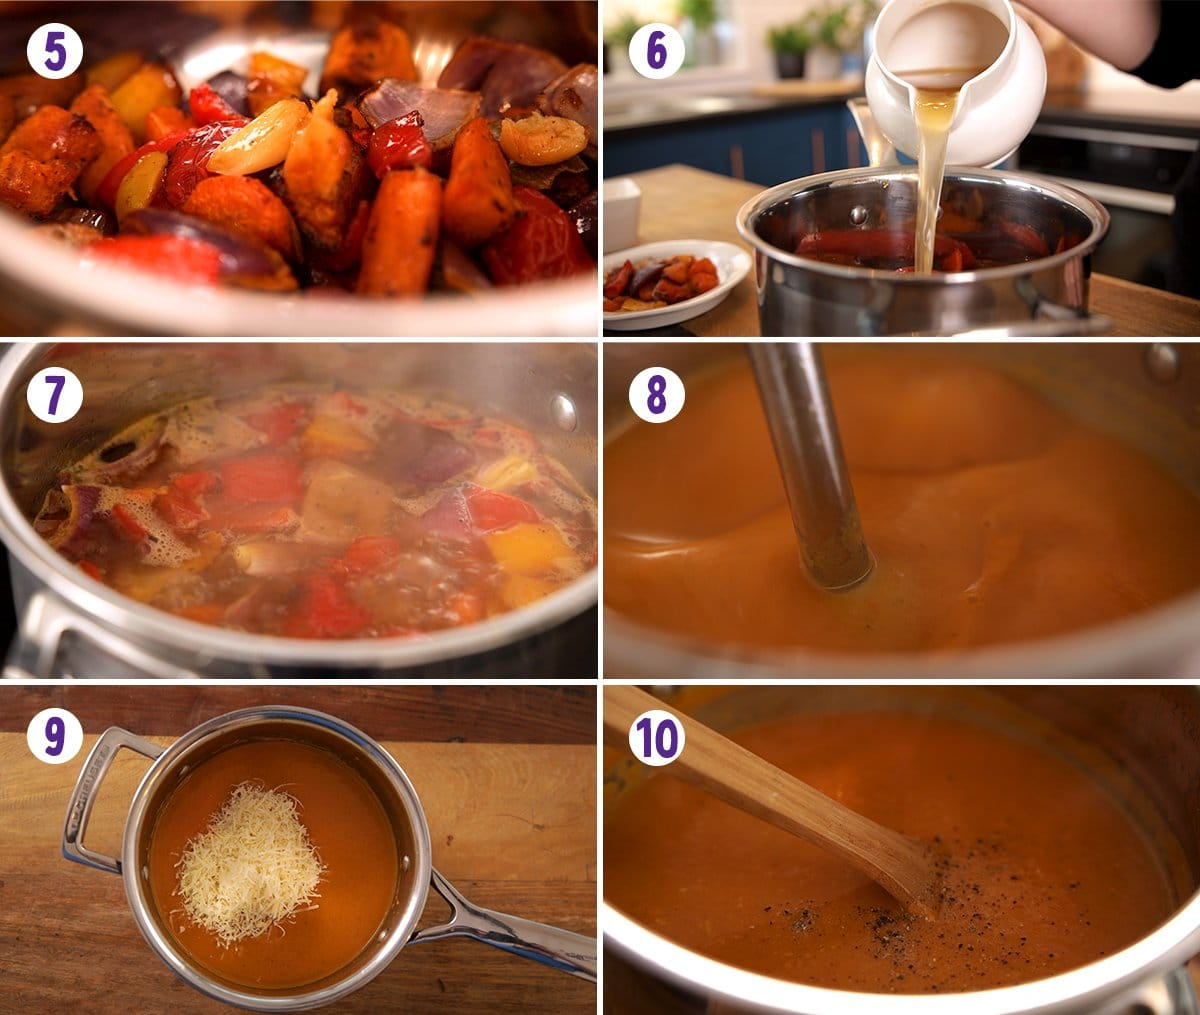 6 image collage showing how to make Roasted vegetable soup